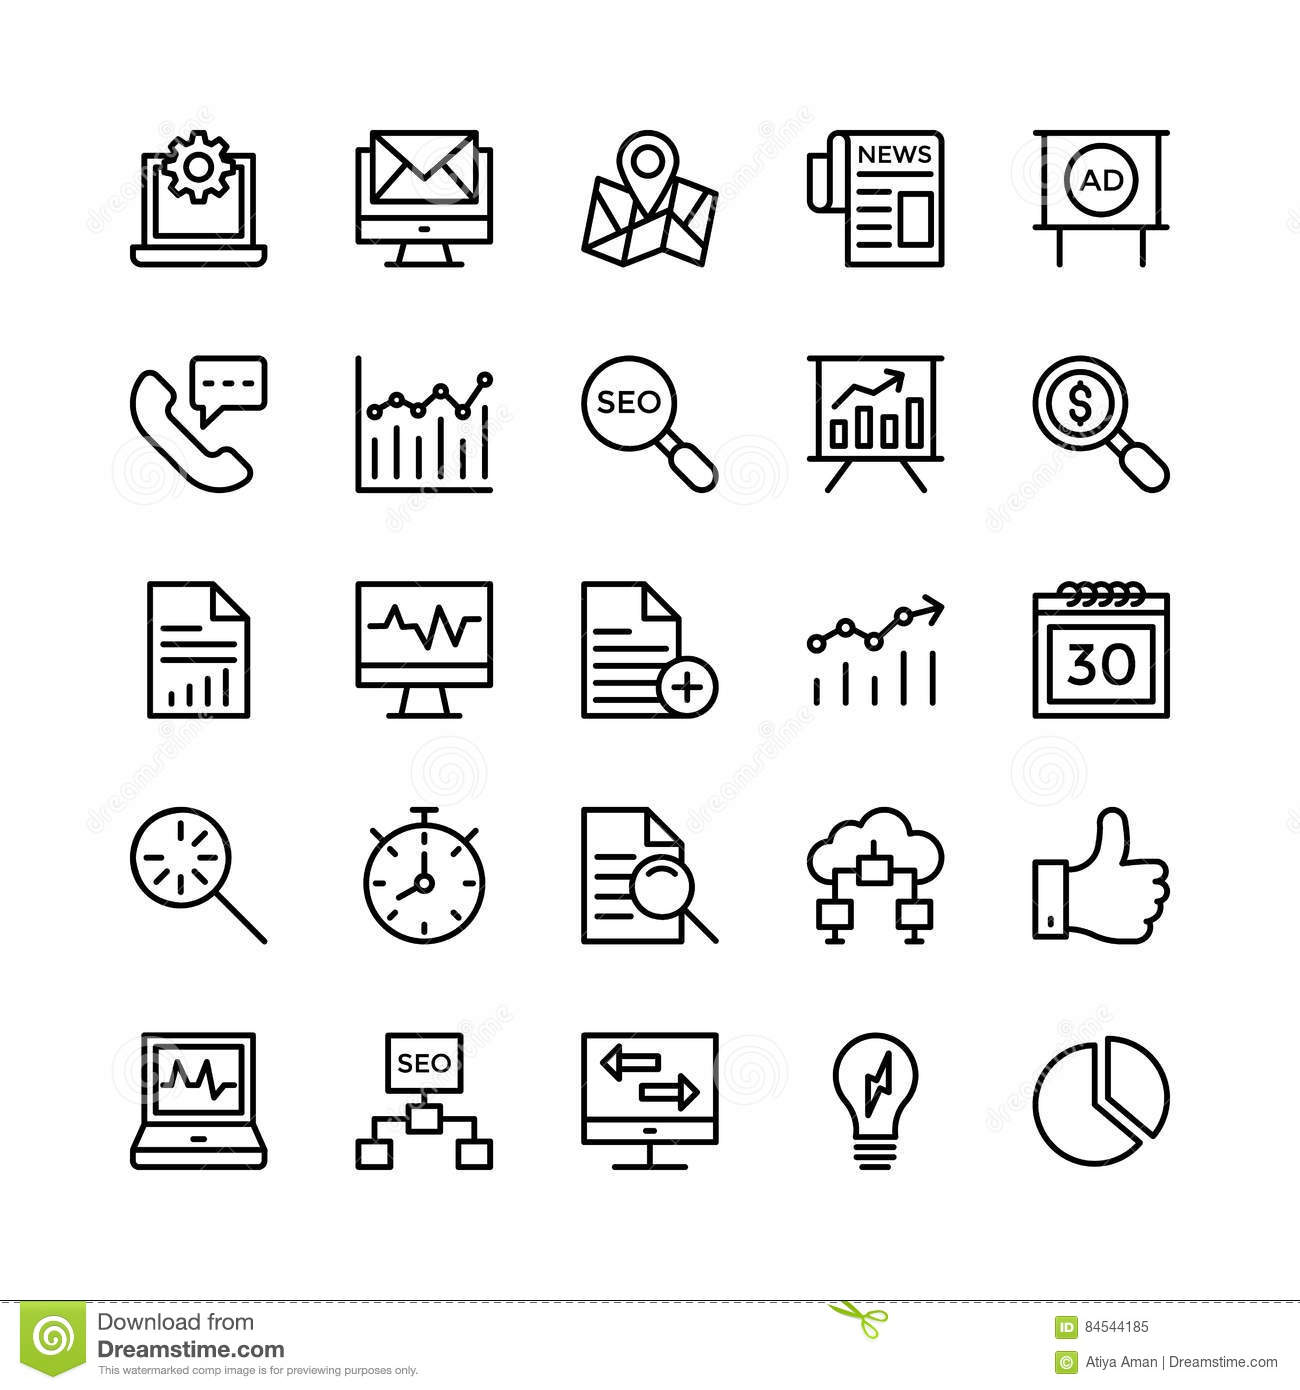 Digital Marketing Line Vector Icons 5